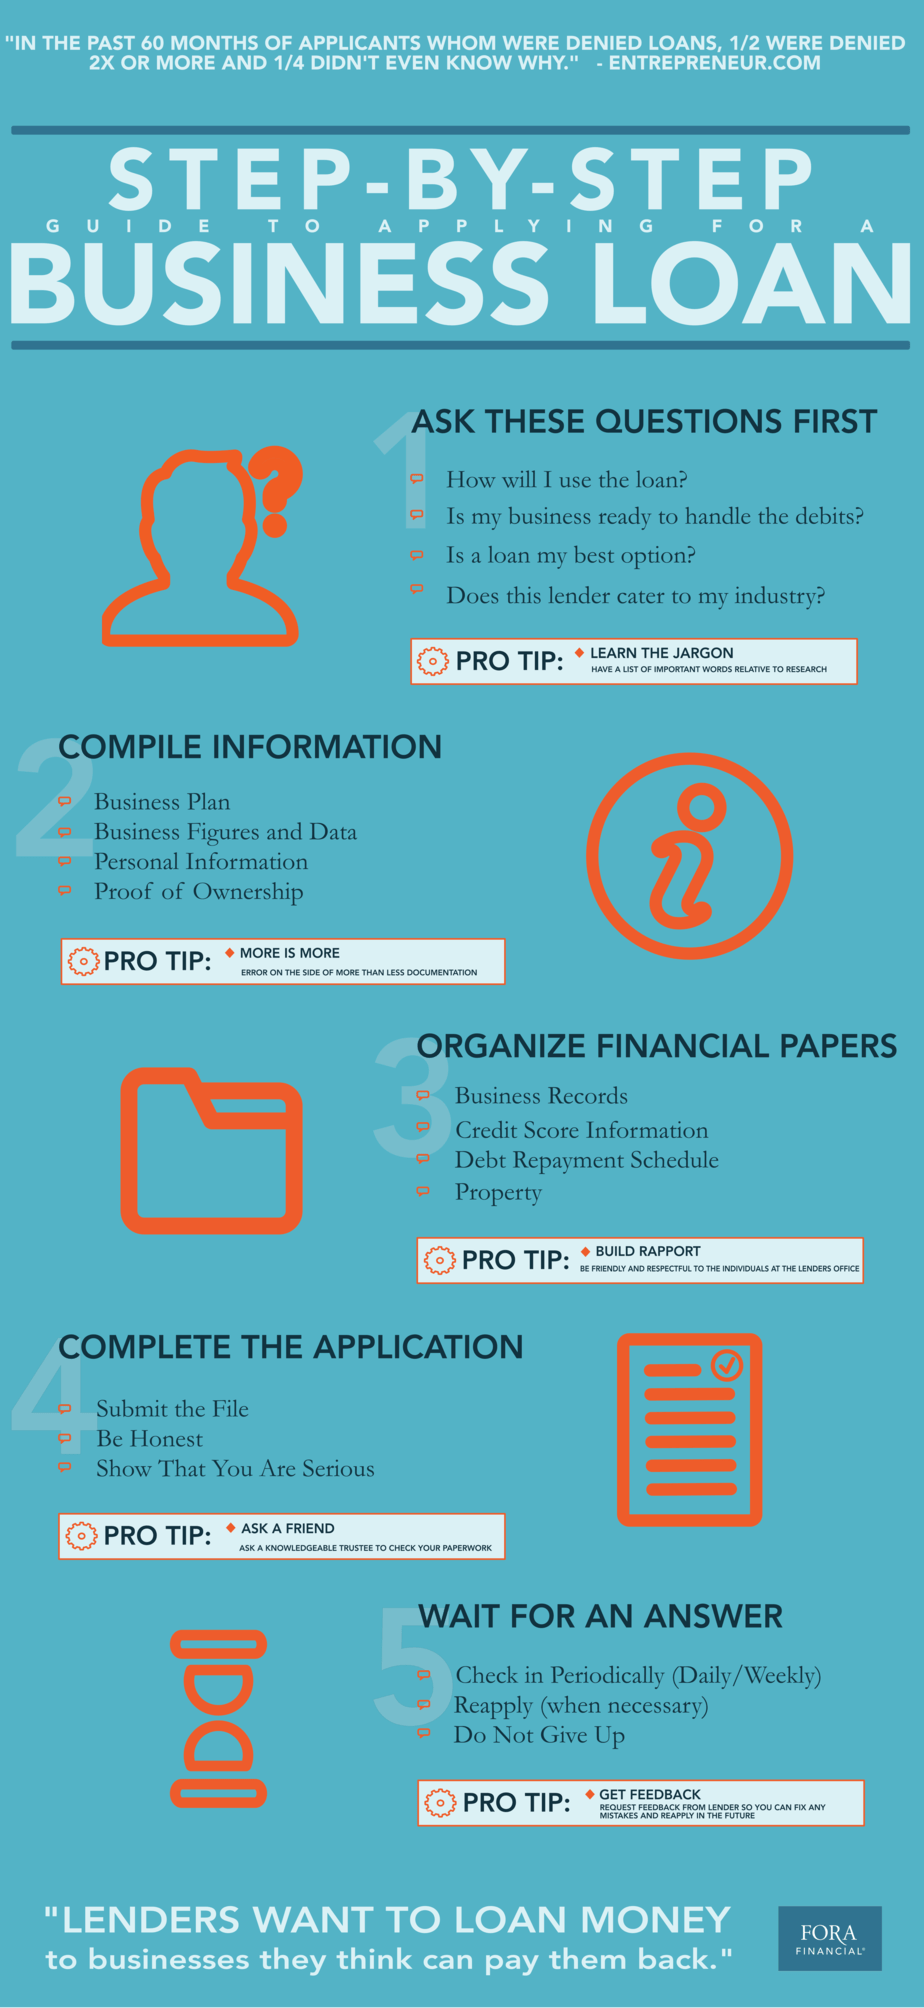 Guide-Applying-Business-Loan-Infographic